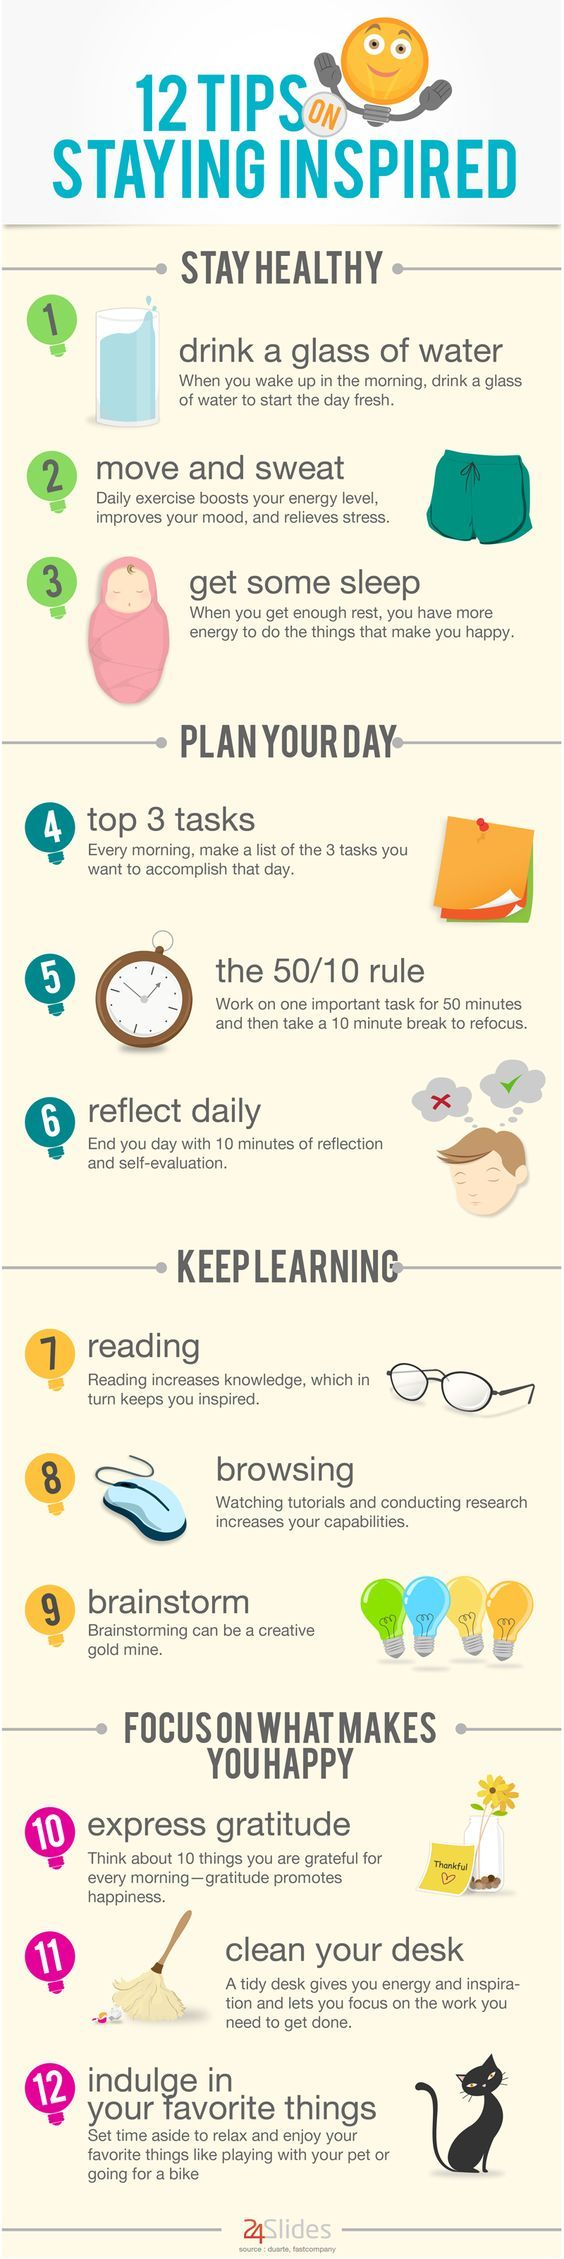 Stay inspired using this 12 simple ideas.